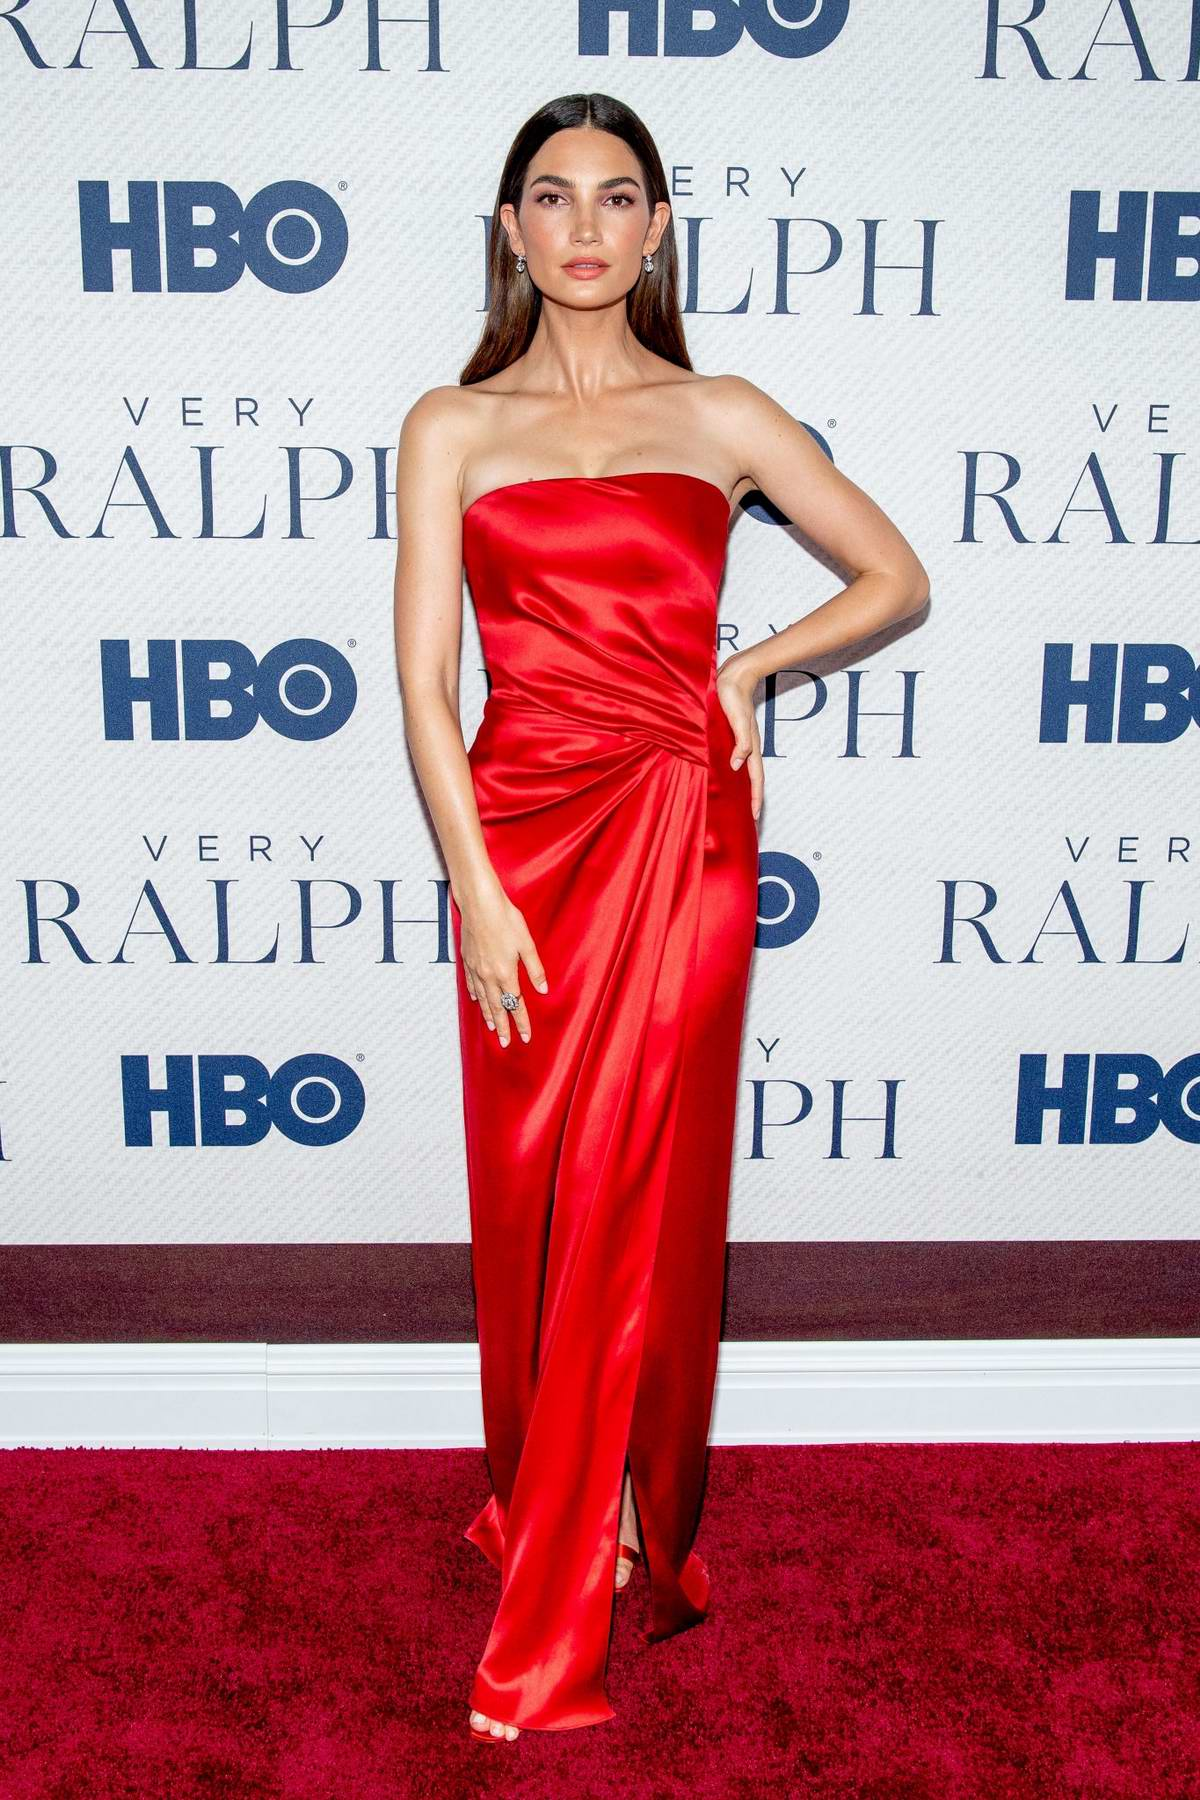 Lily Aldridge attends the World Premiere of HBO's 'Very Ralph' at the Metropolitan Museum of Art in New York City